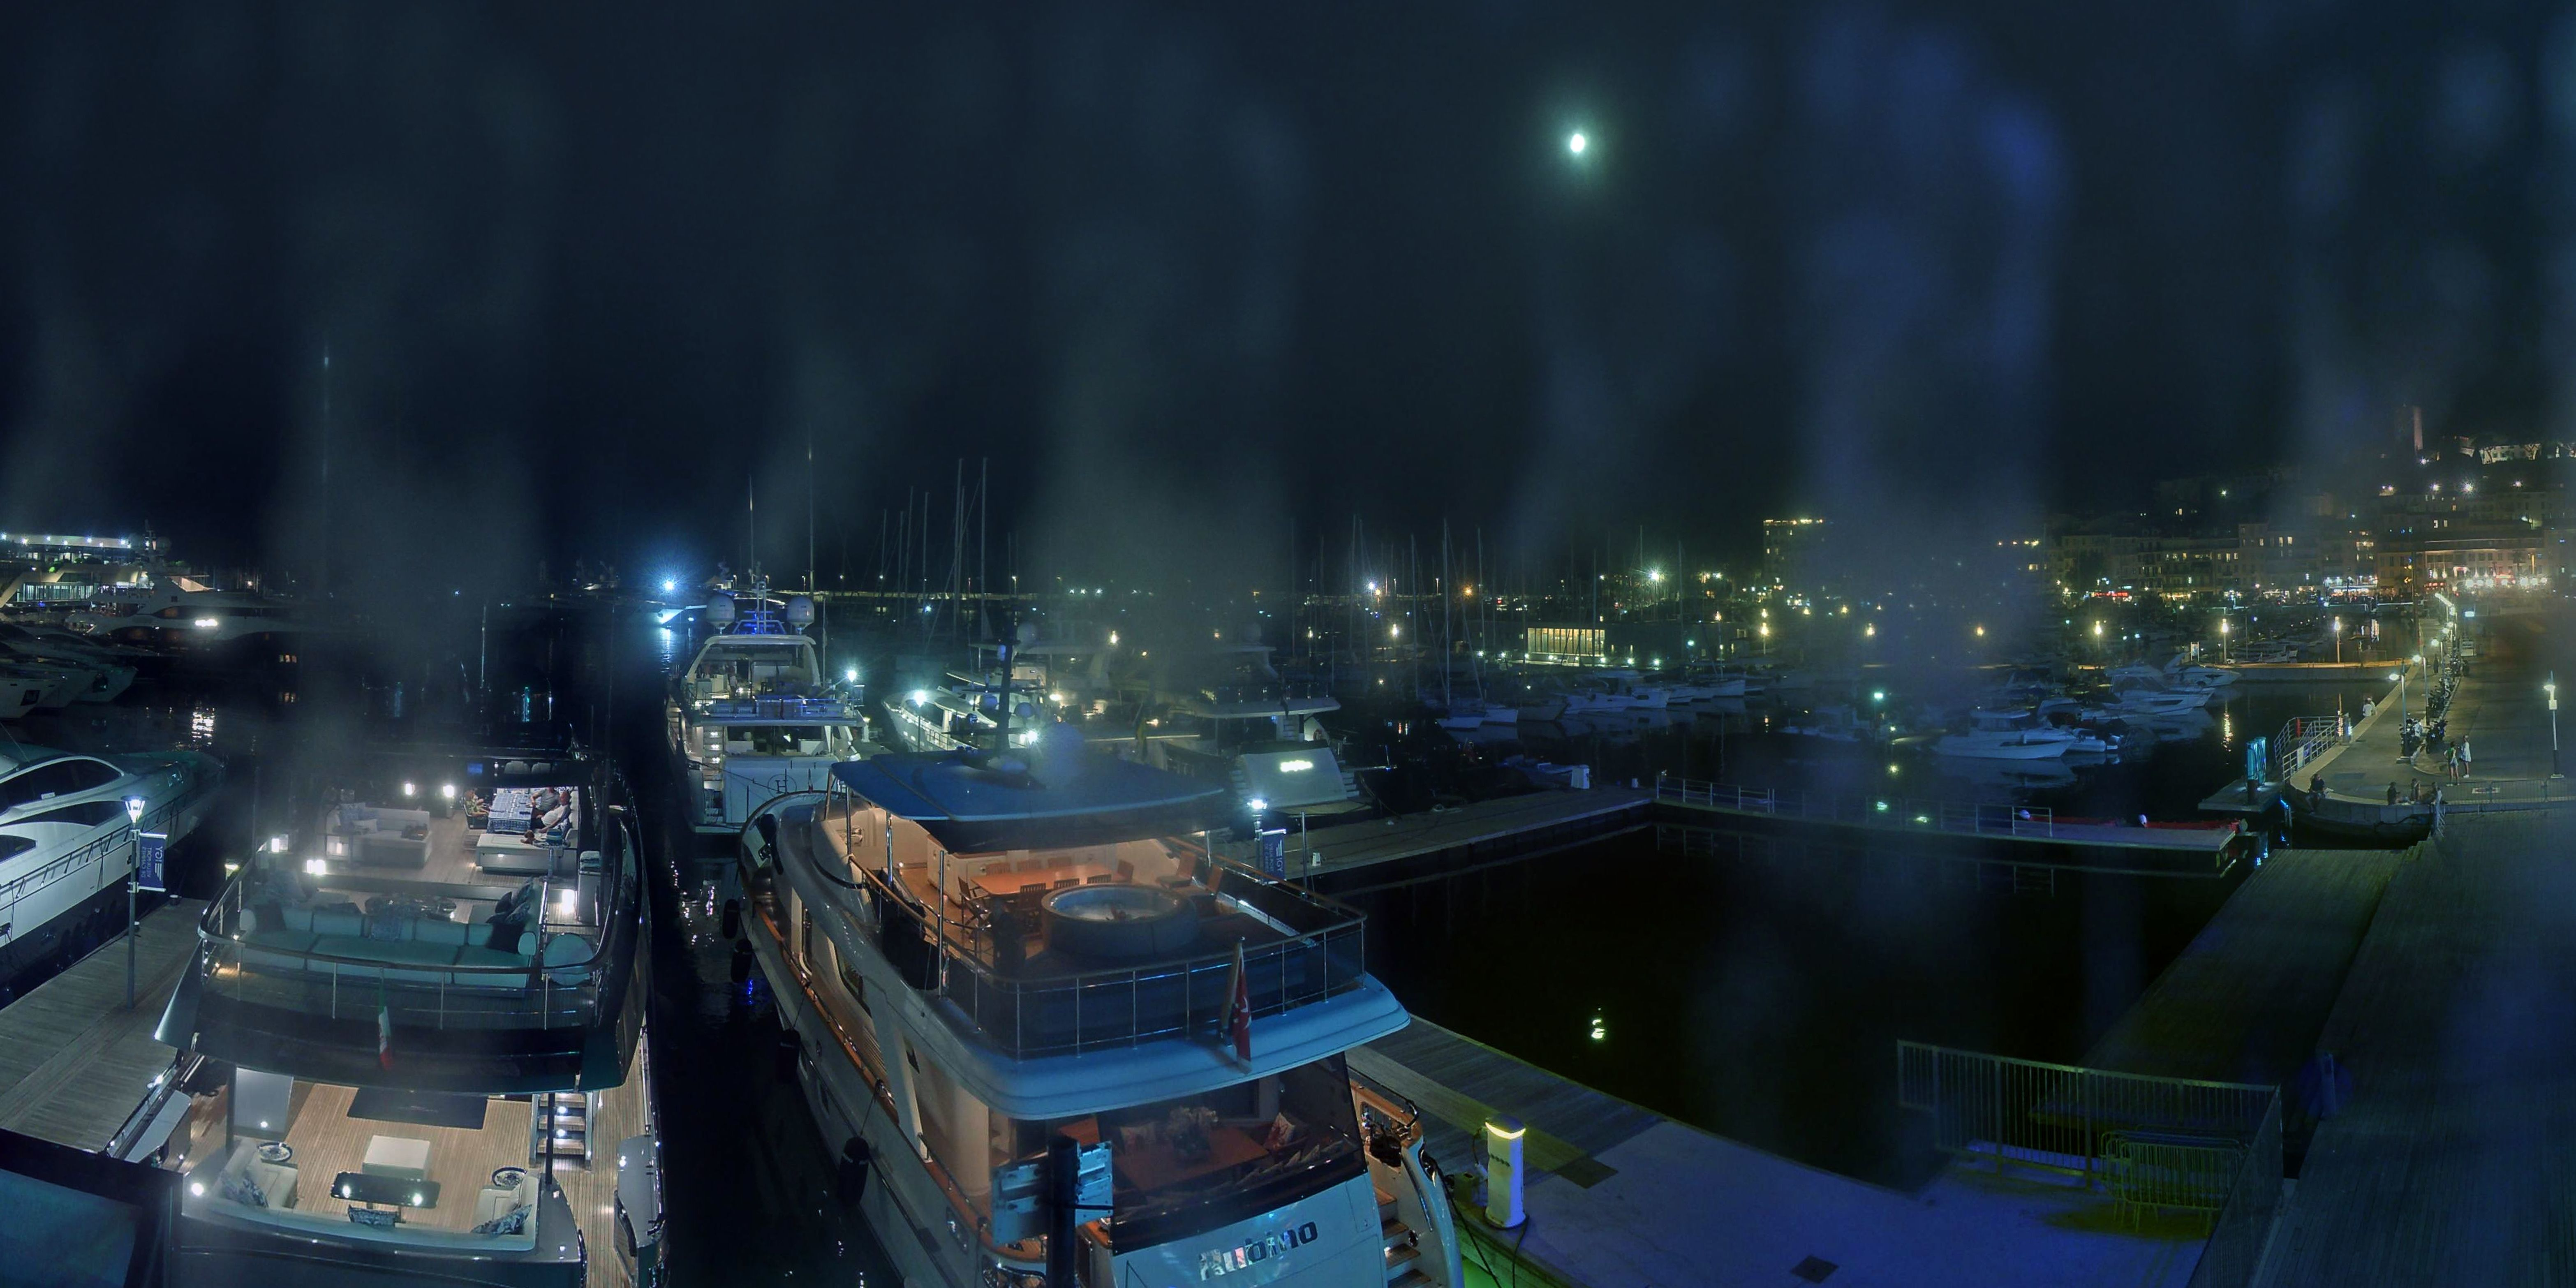 Cannes Wed. 23:35